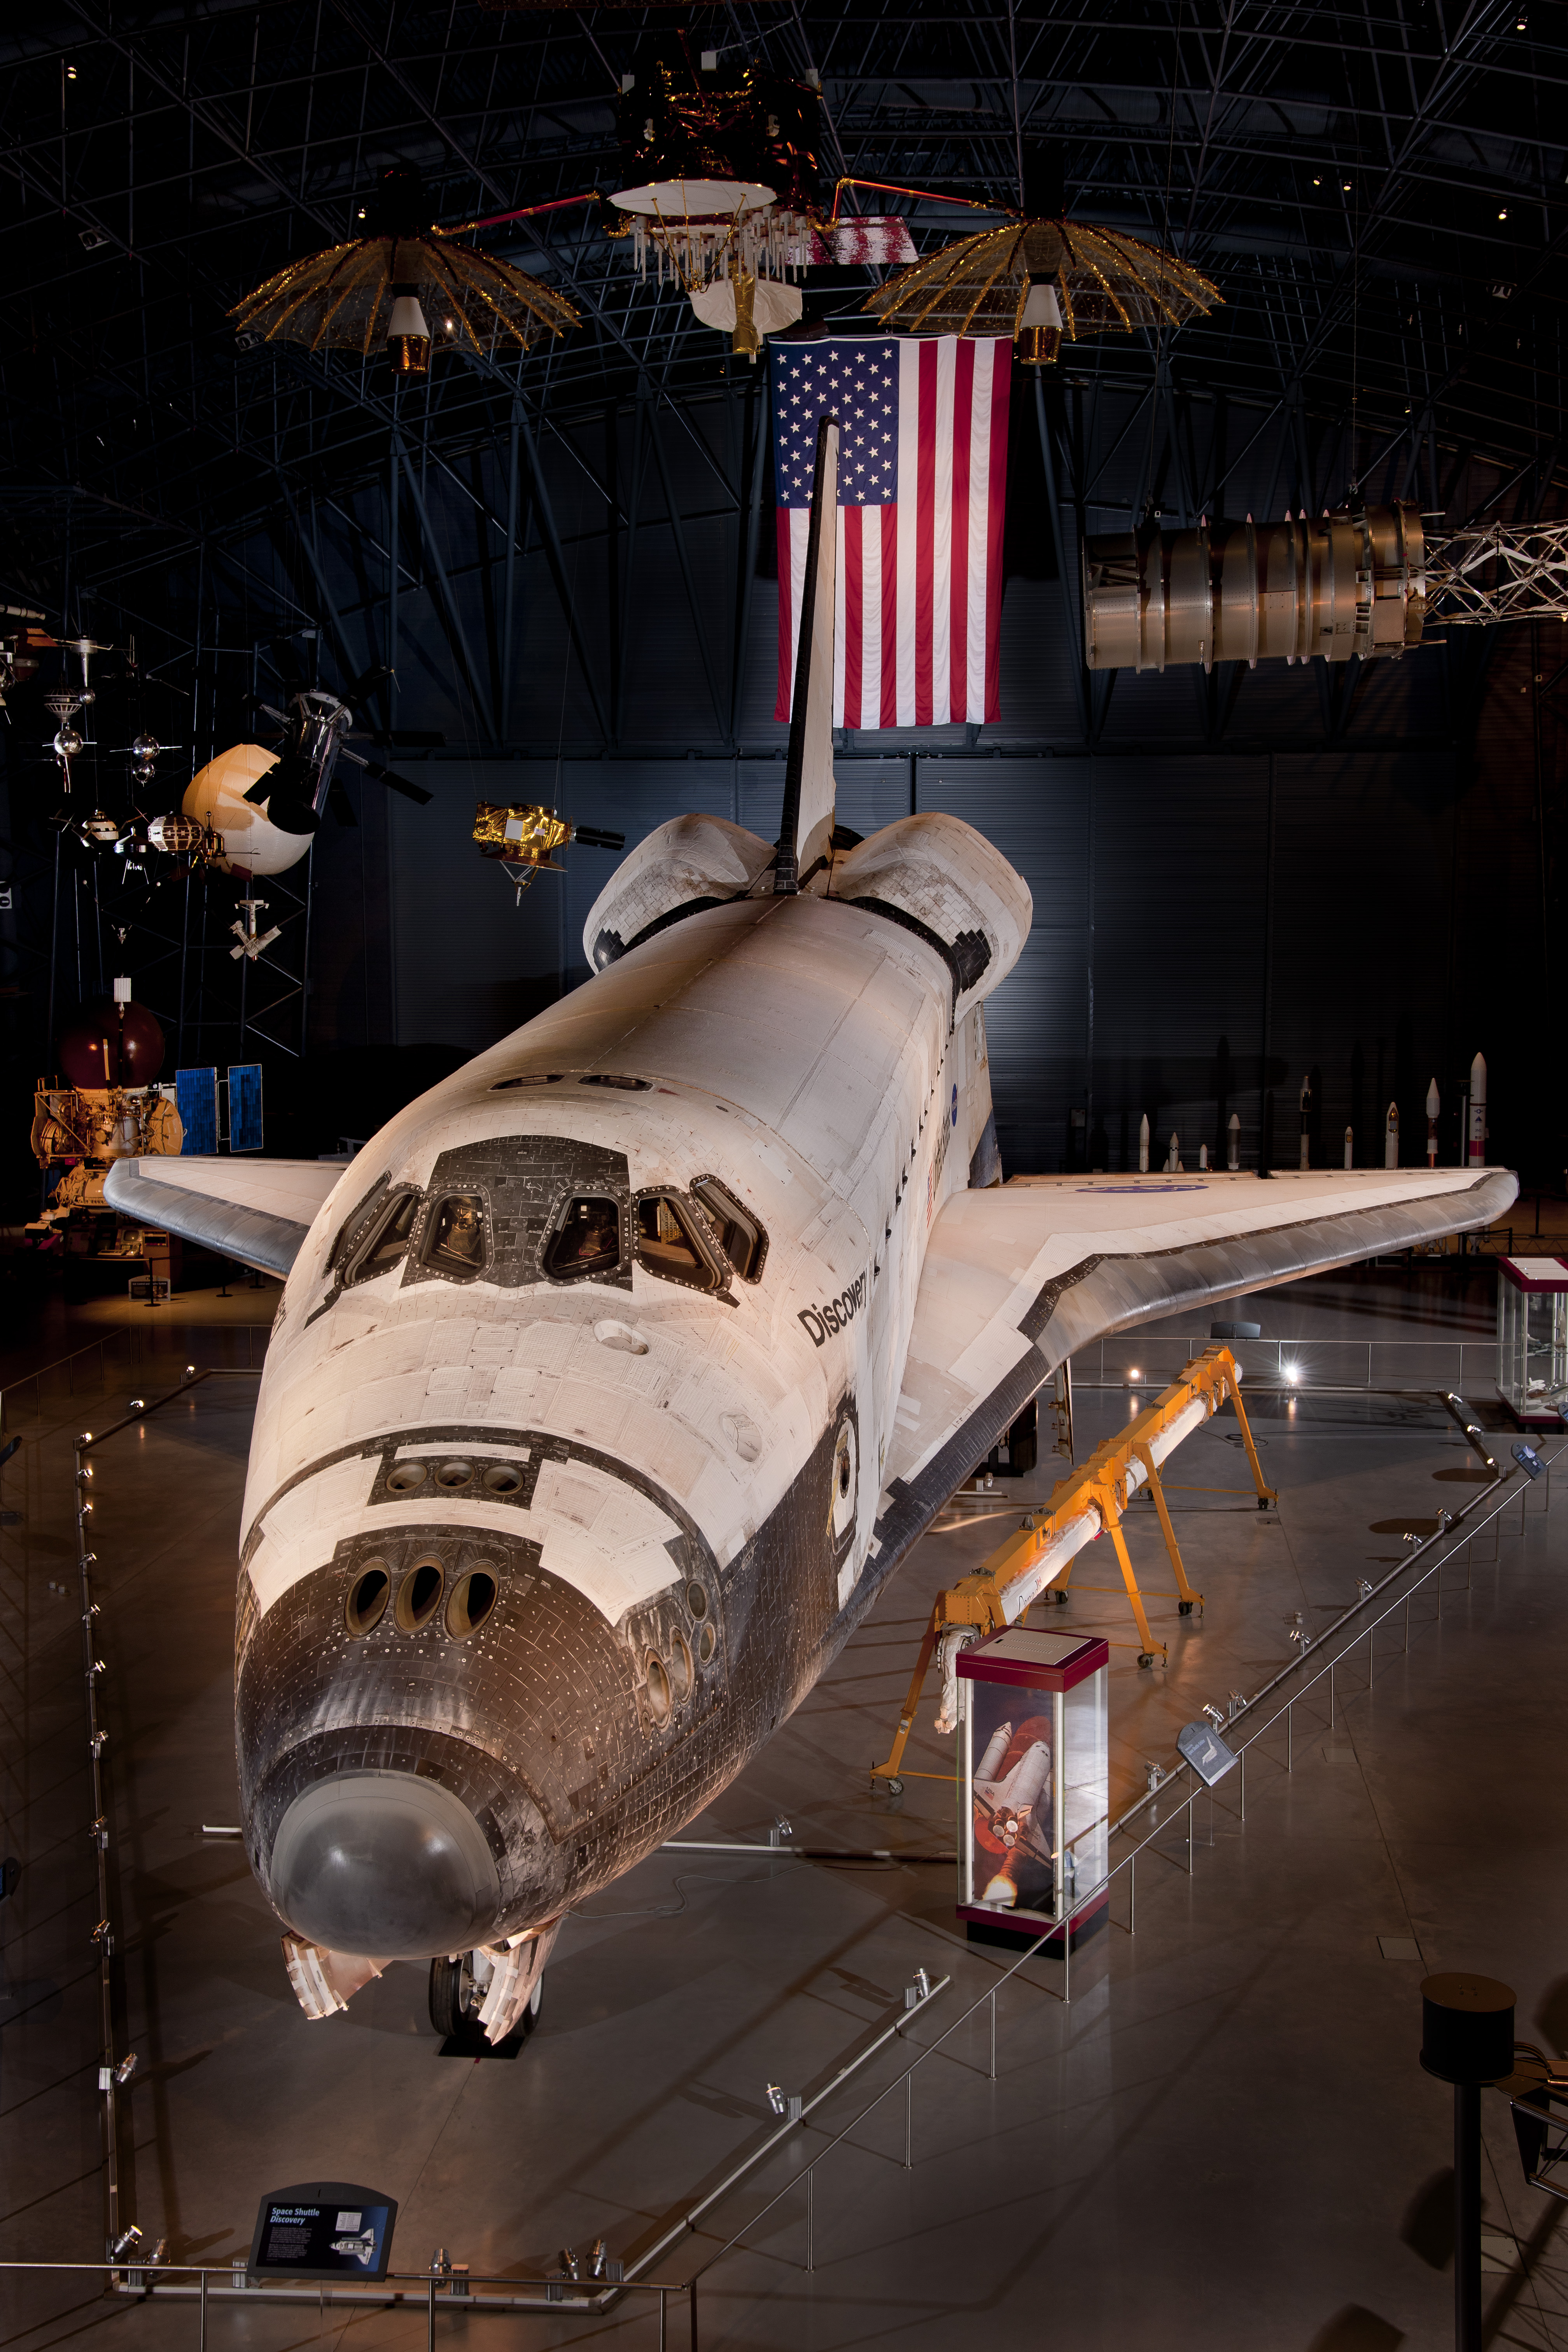 space shuttle discovery location - photo #3